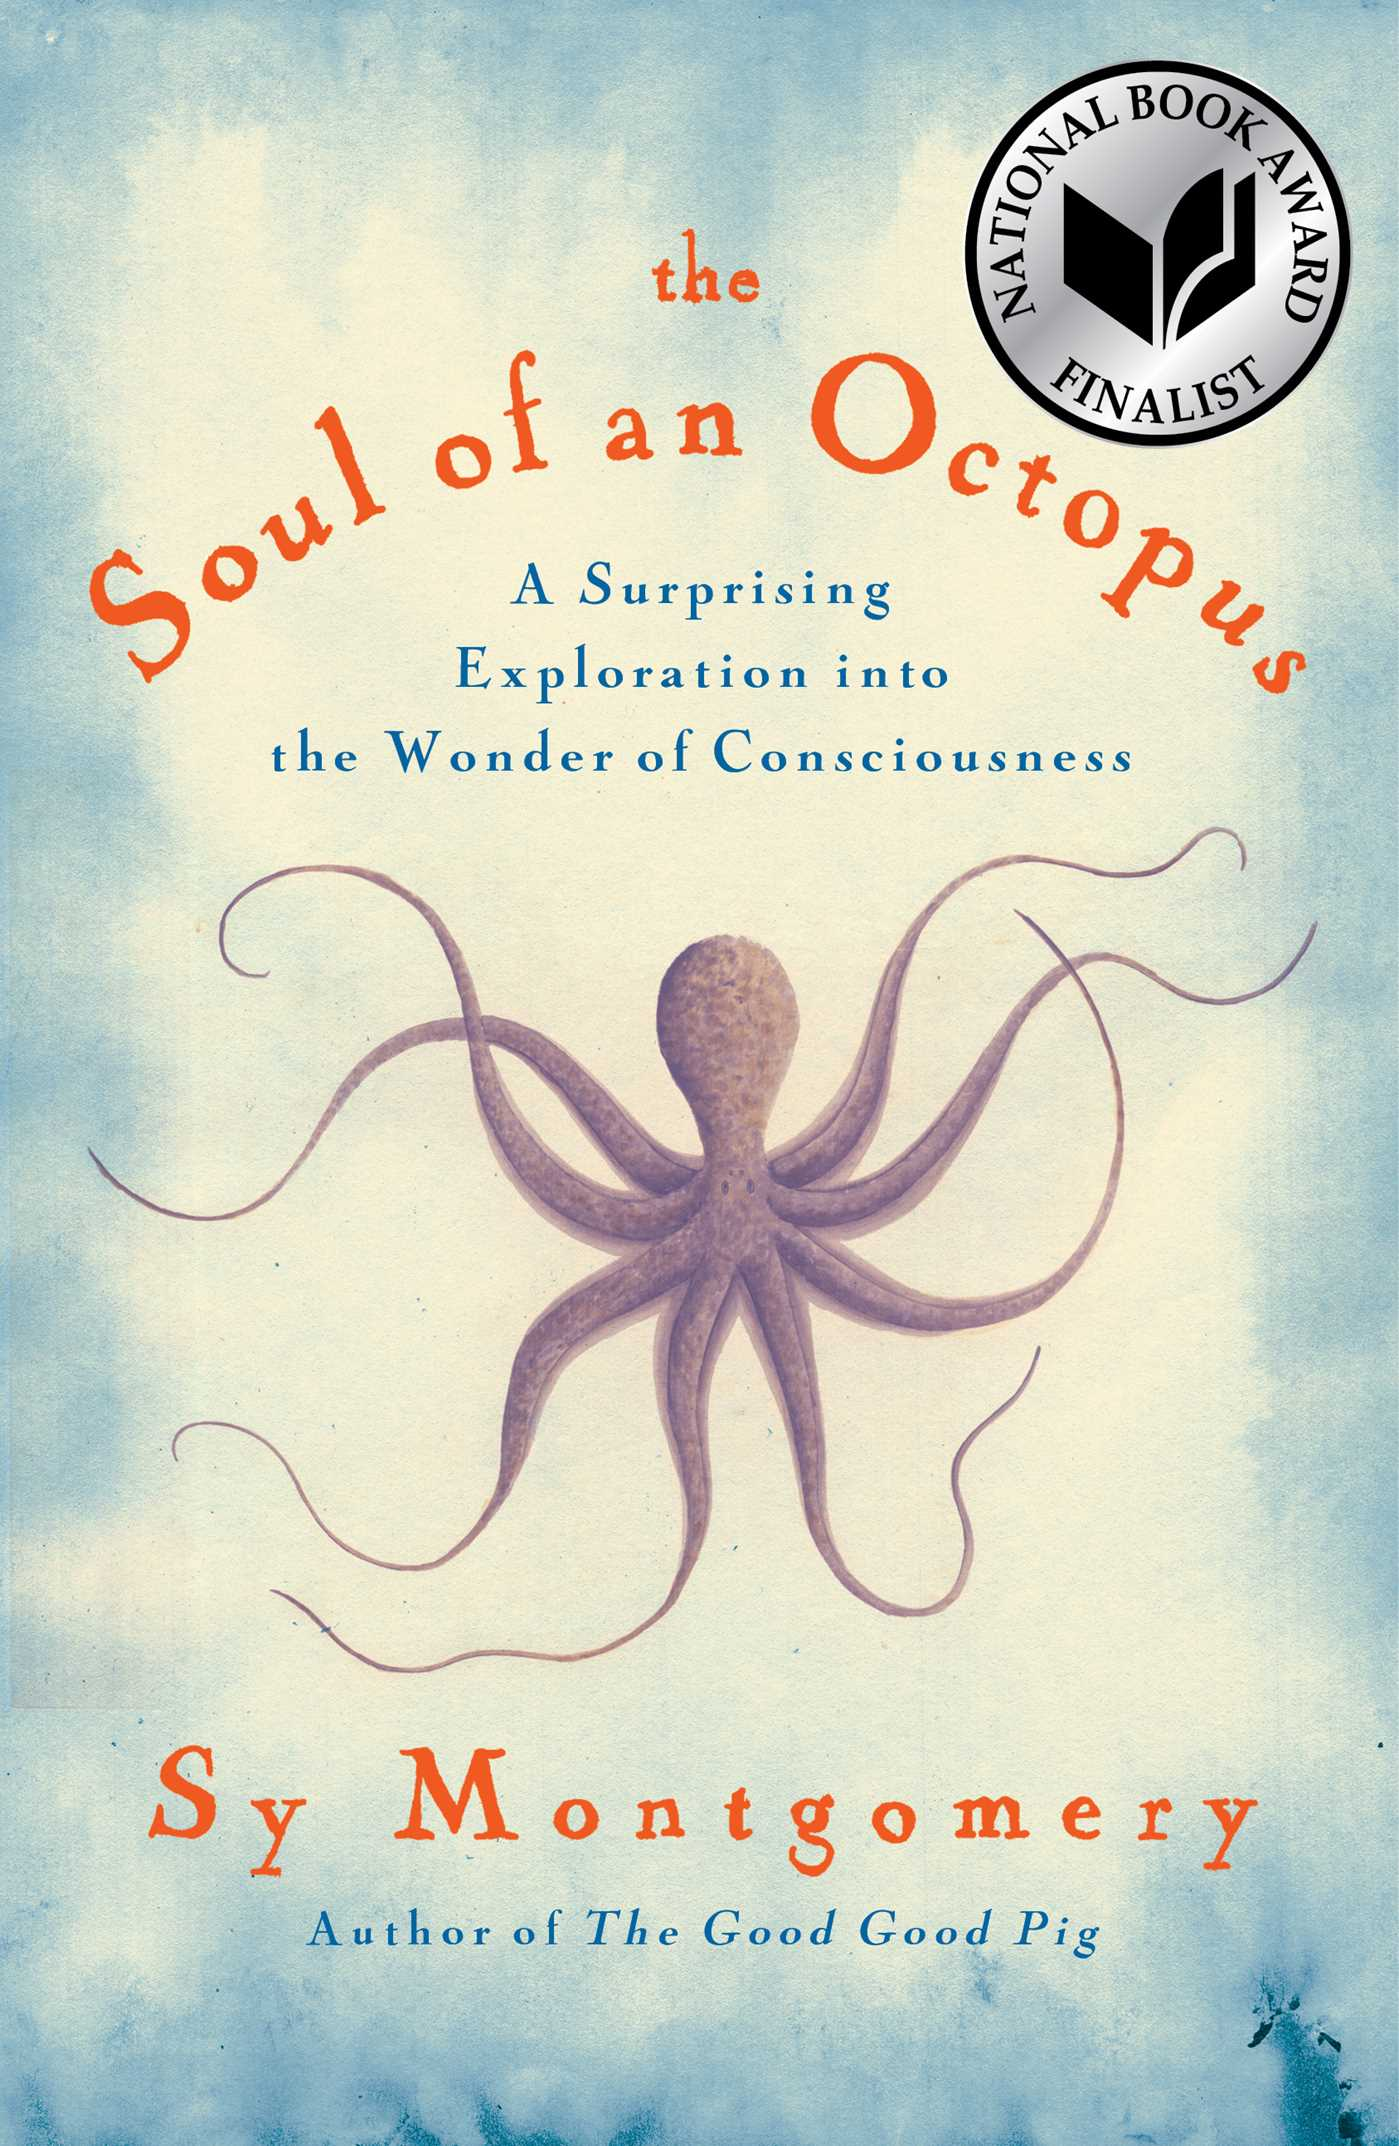 The-soul-of-an-octopus-9781451697711_hr